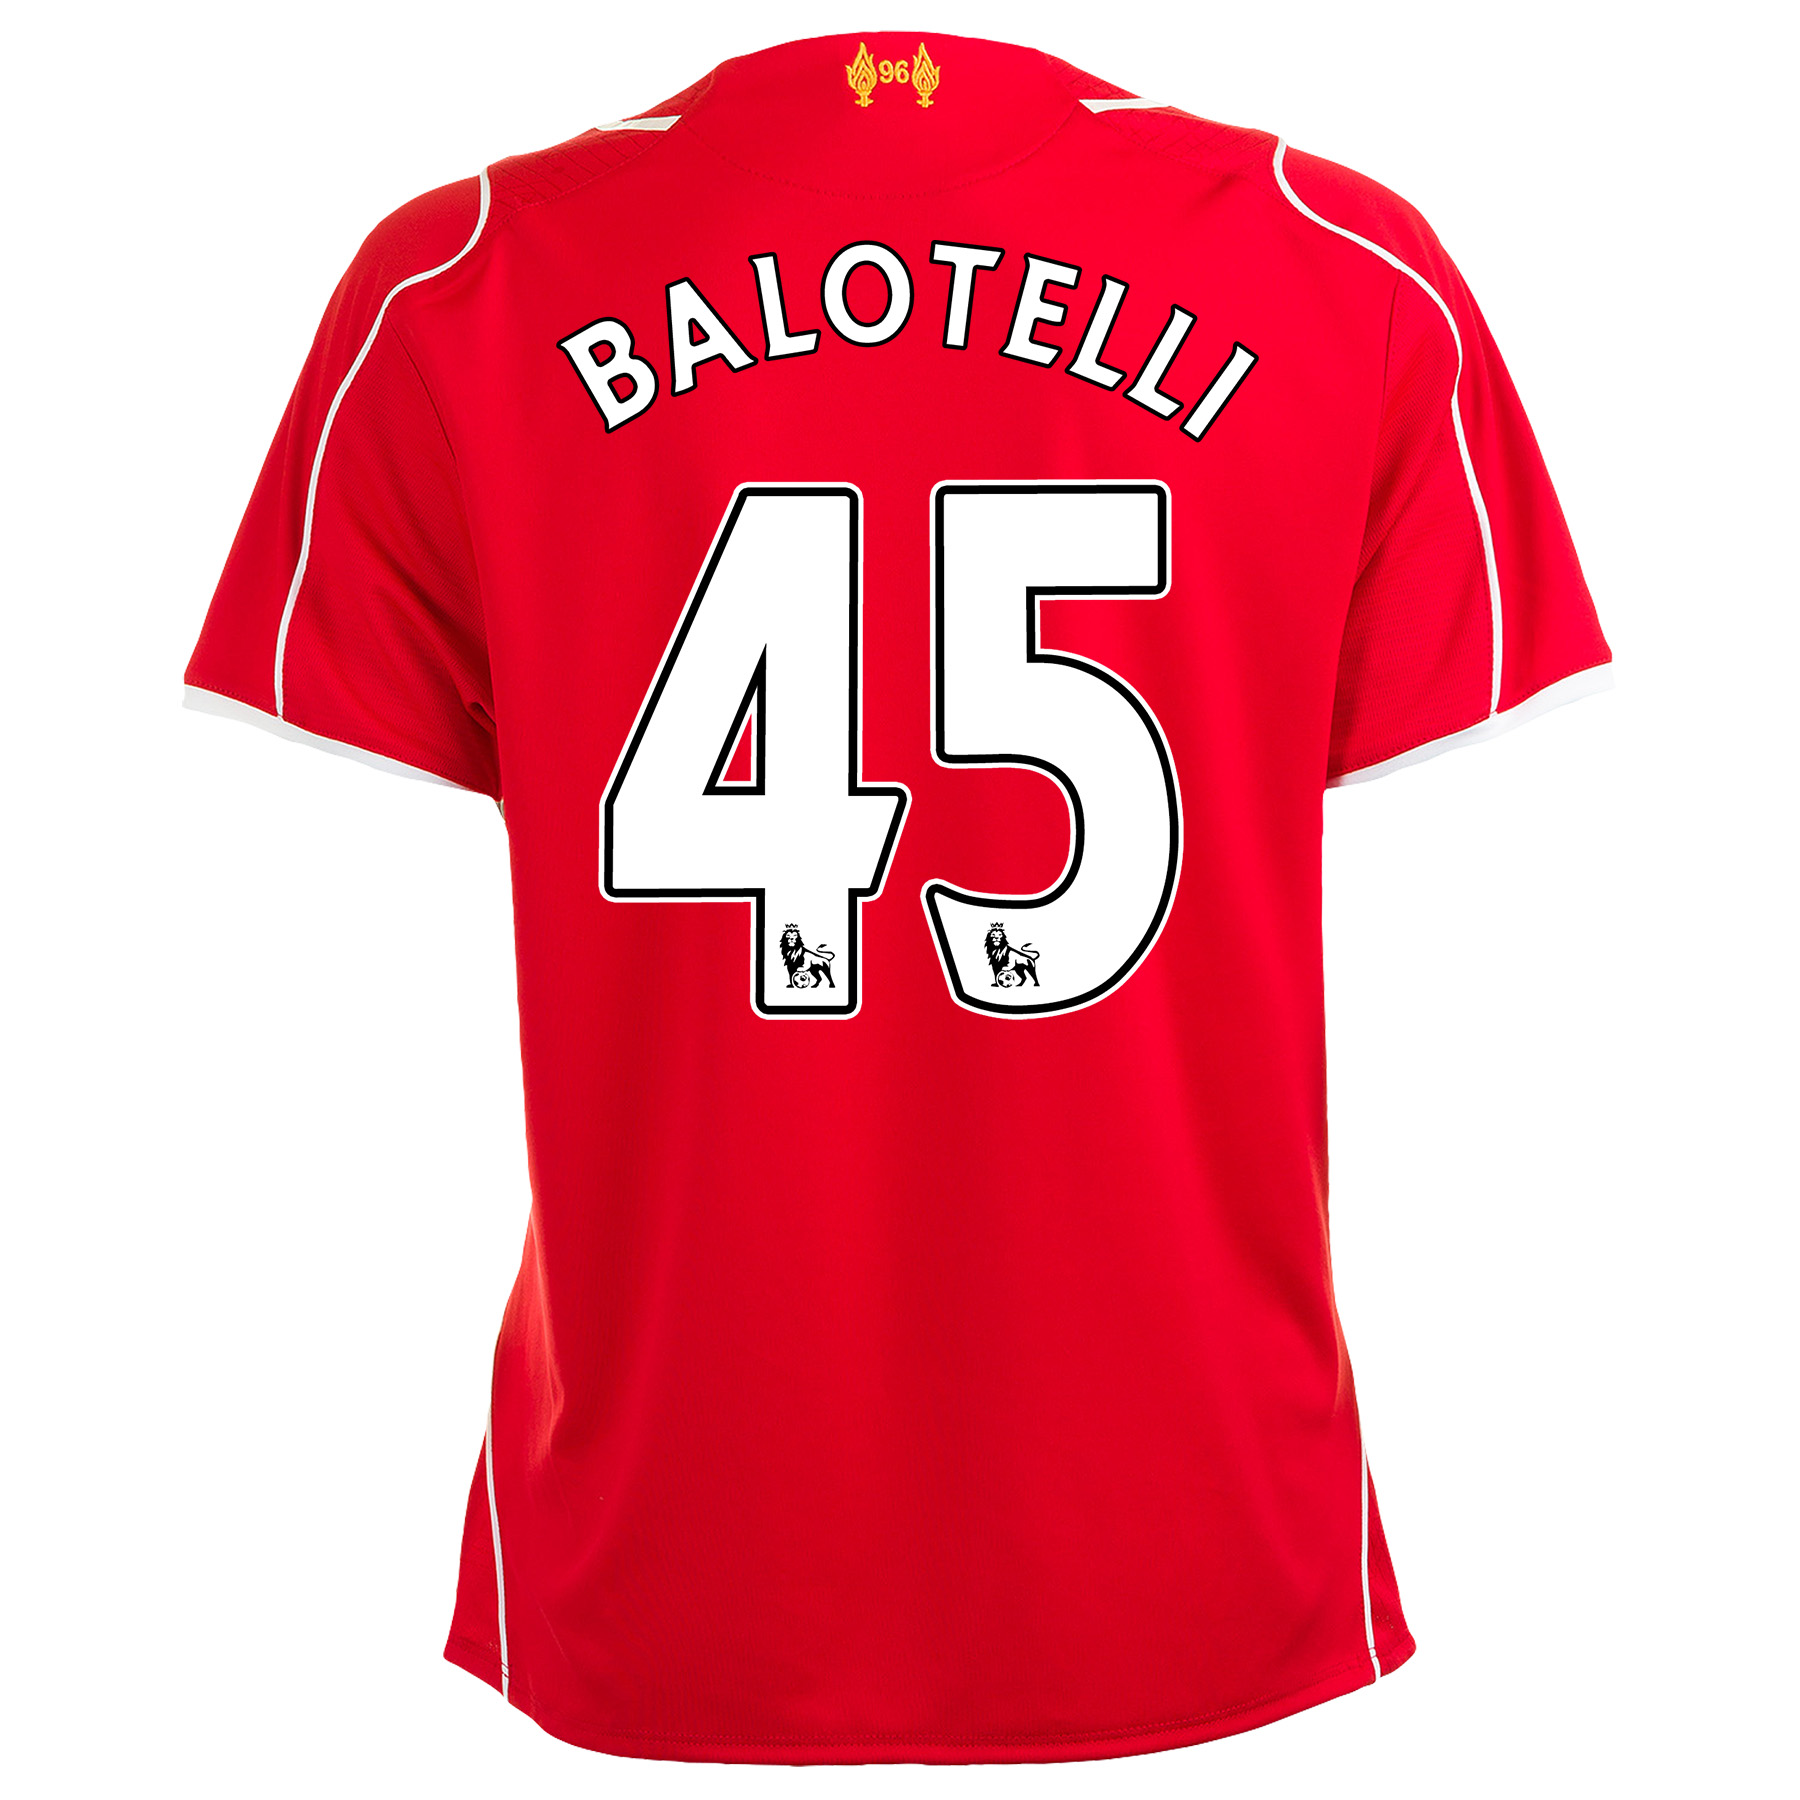 Liverpool Home Shirt 2014/15 Womens with Balotelli 45 printing